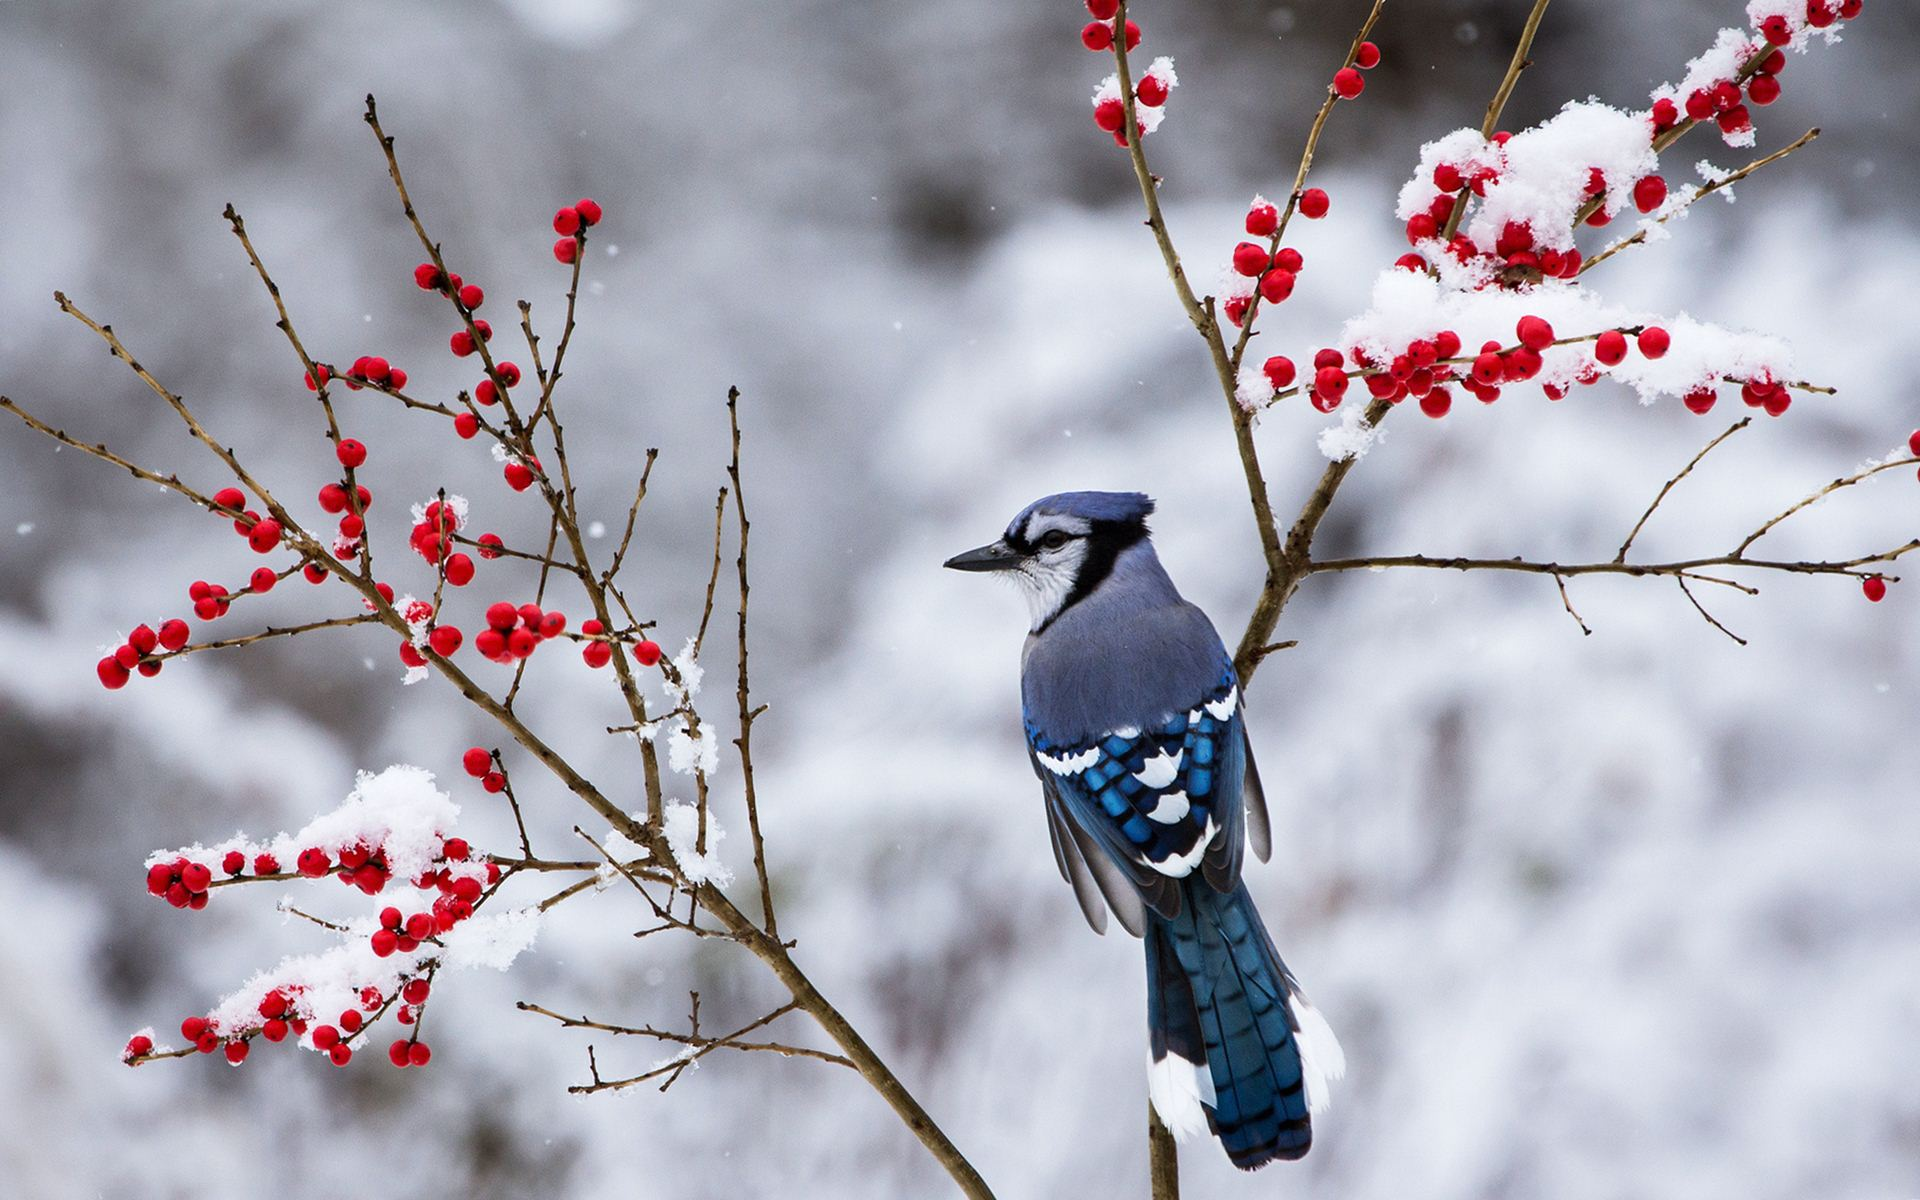 Live 3d Wallpaper Snowing Beautiful Snow Bird Wallpaper 38533 1920x1200px